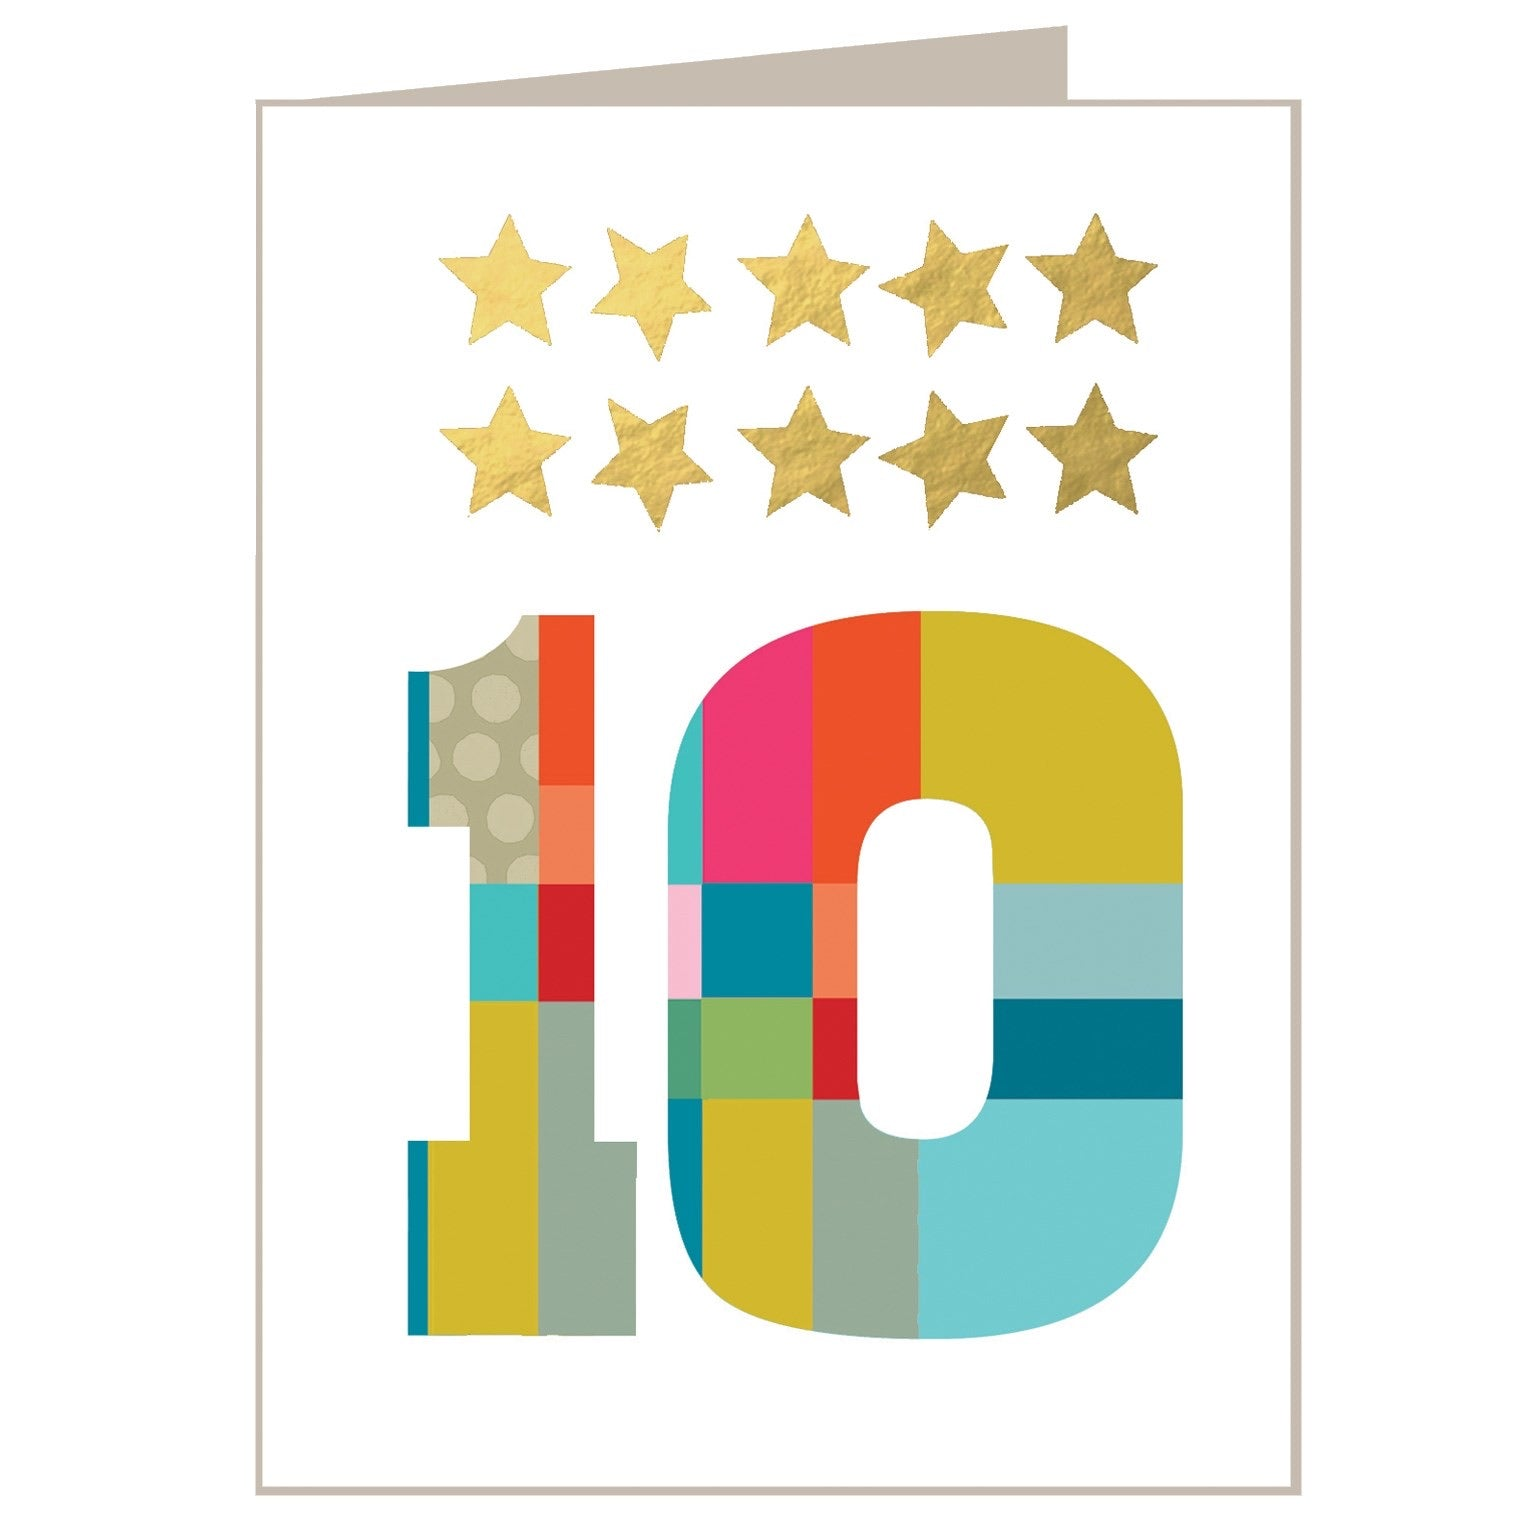 10 - Mini Gold Star Card